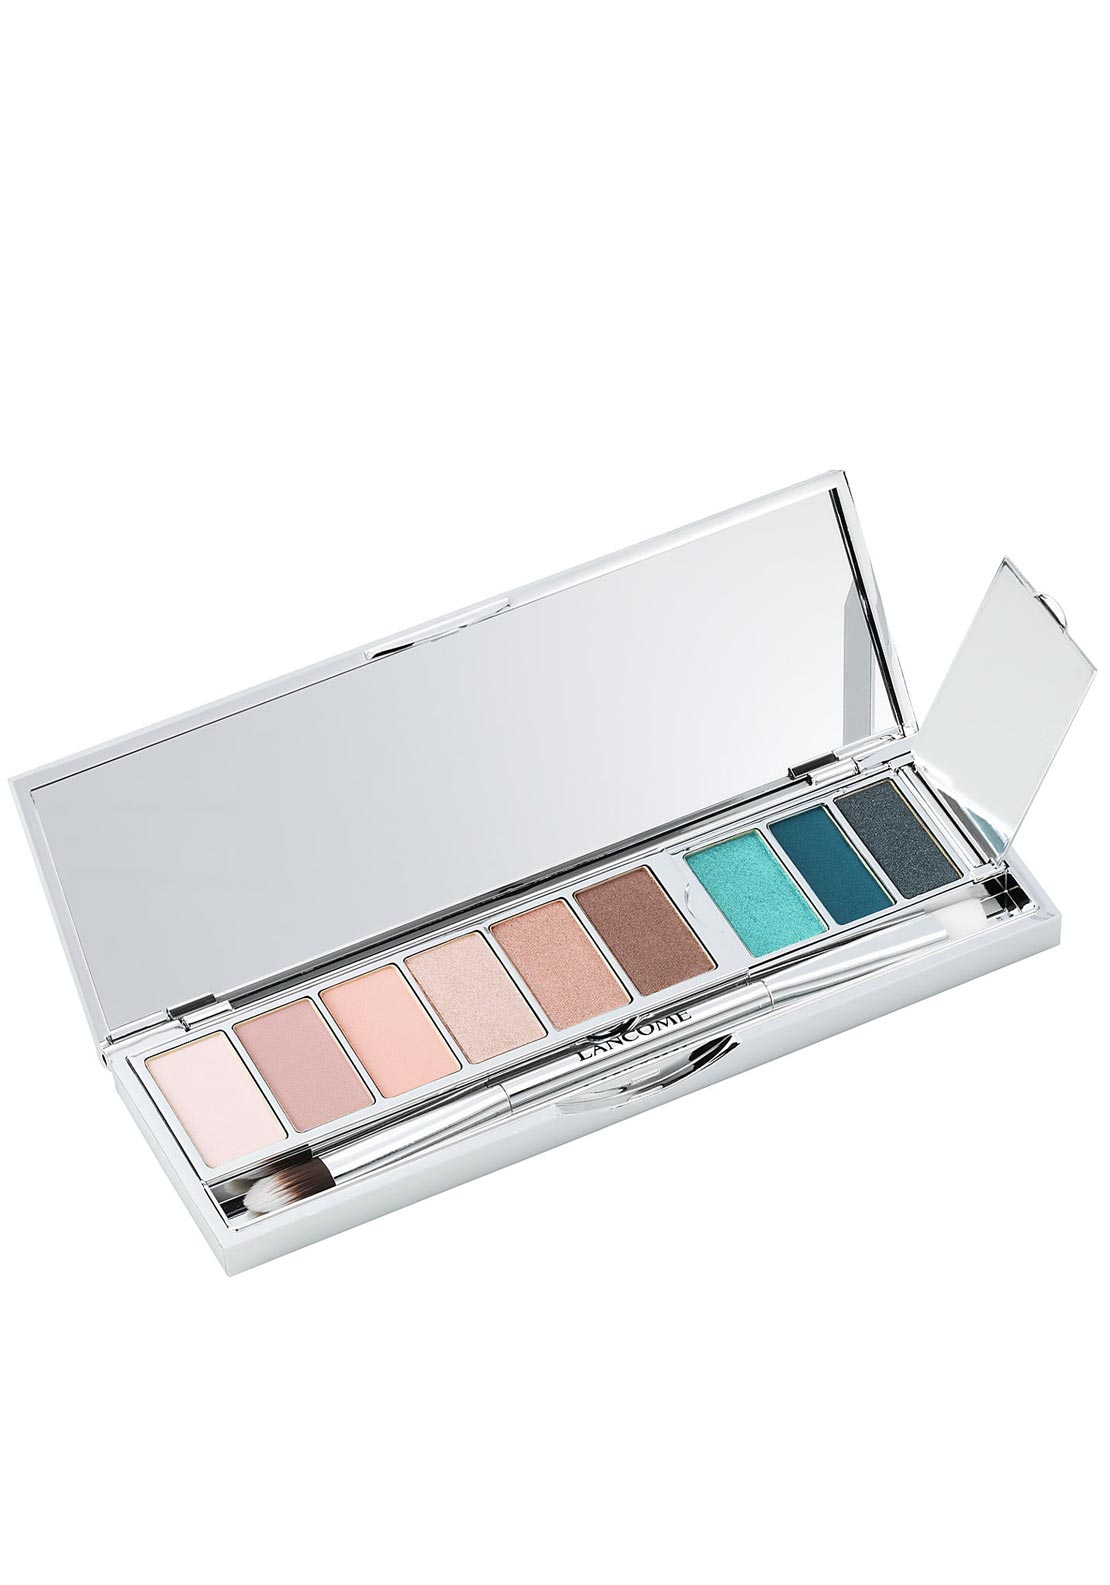 Lancôme My French Palette with Seven Colours & Two Liners, Limited Edition